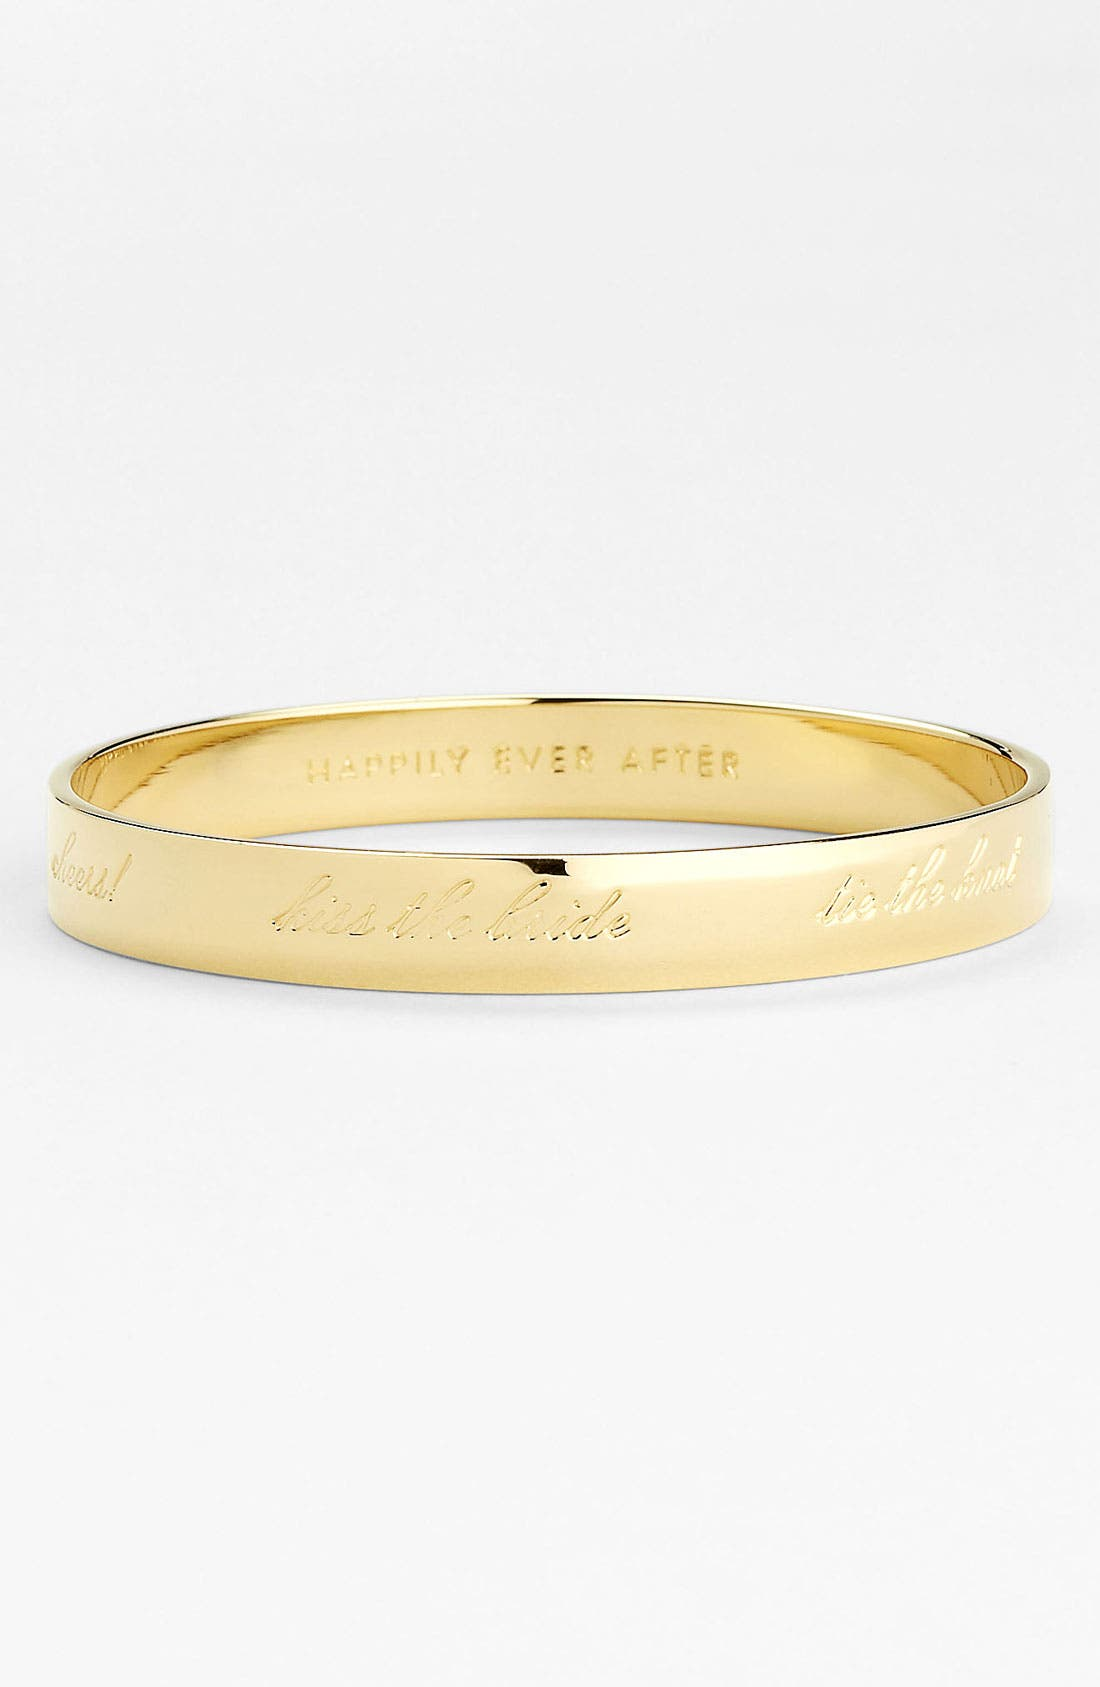 Alternate Image 1 Selected - kate spade new york 'idiom - happily ever after' bangle